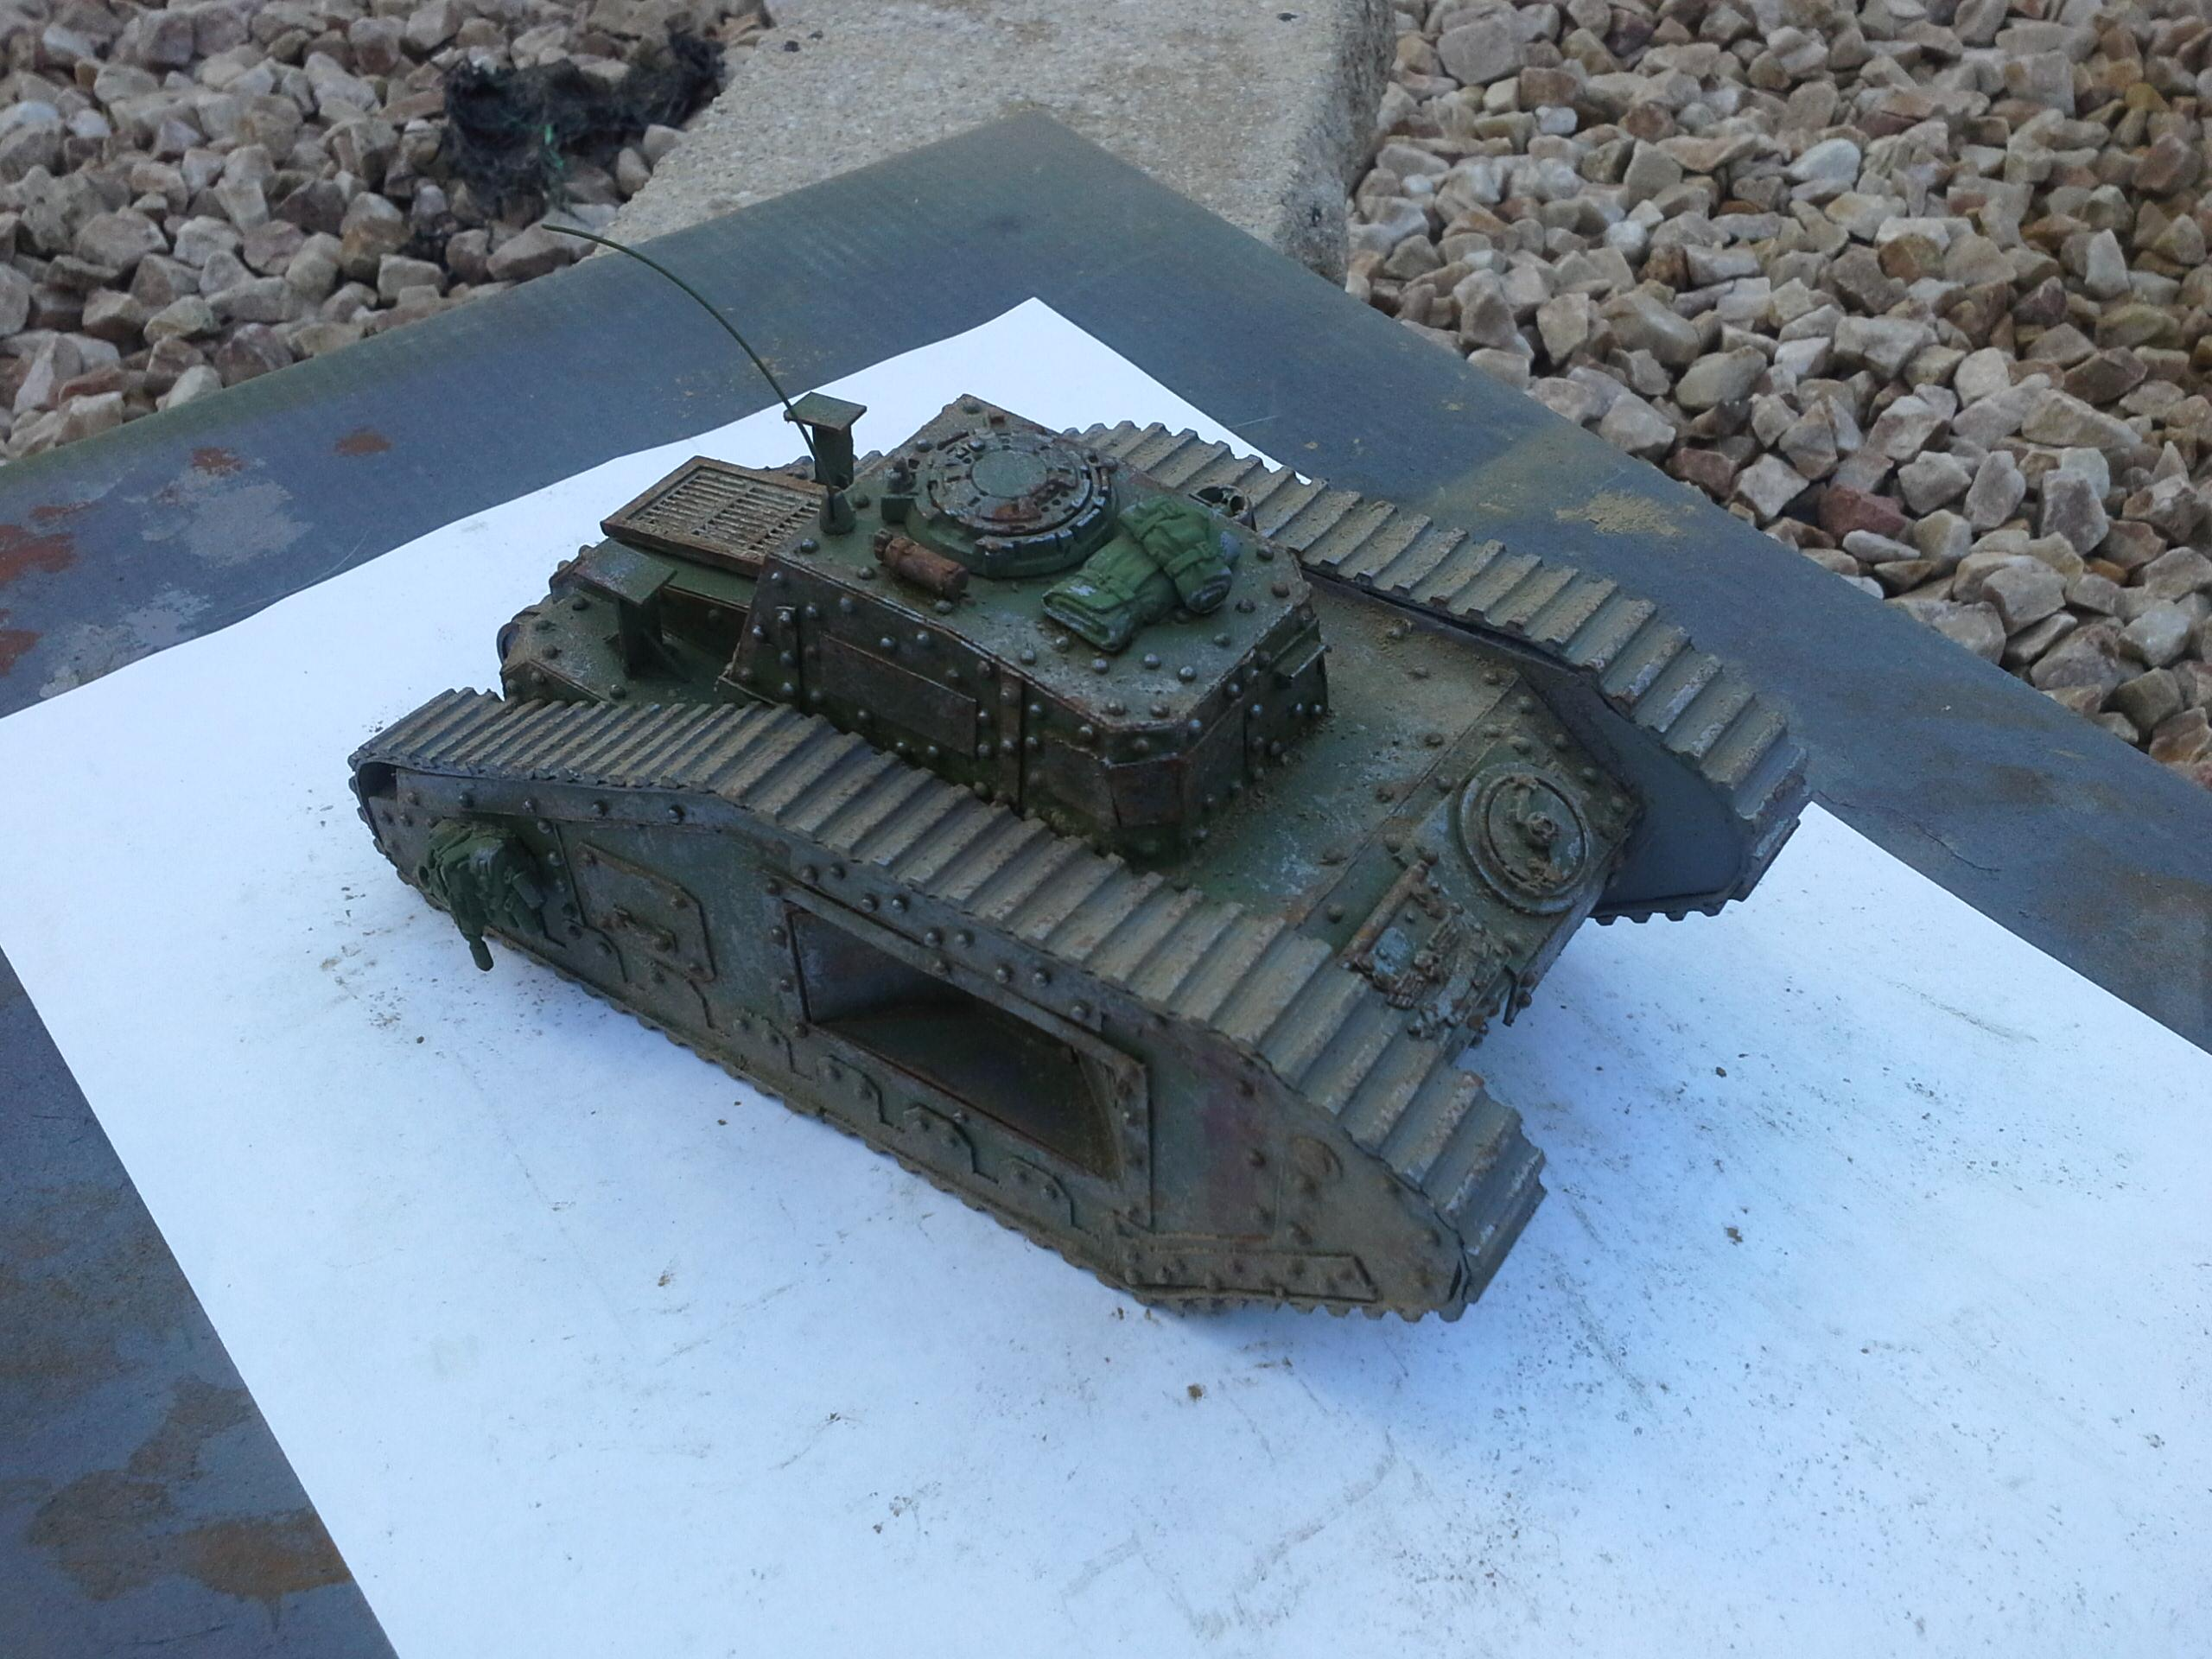 Ancient, Defender, Dirt, Imperial Guard, Malcador, Recovery, Rivets, Rust, Scratch, Scratch Build, Supply, Tank, Weathered